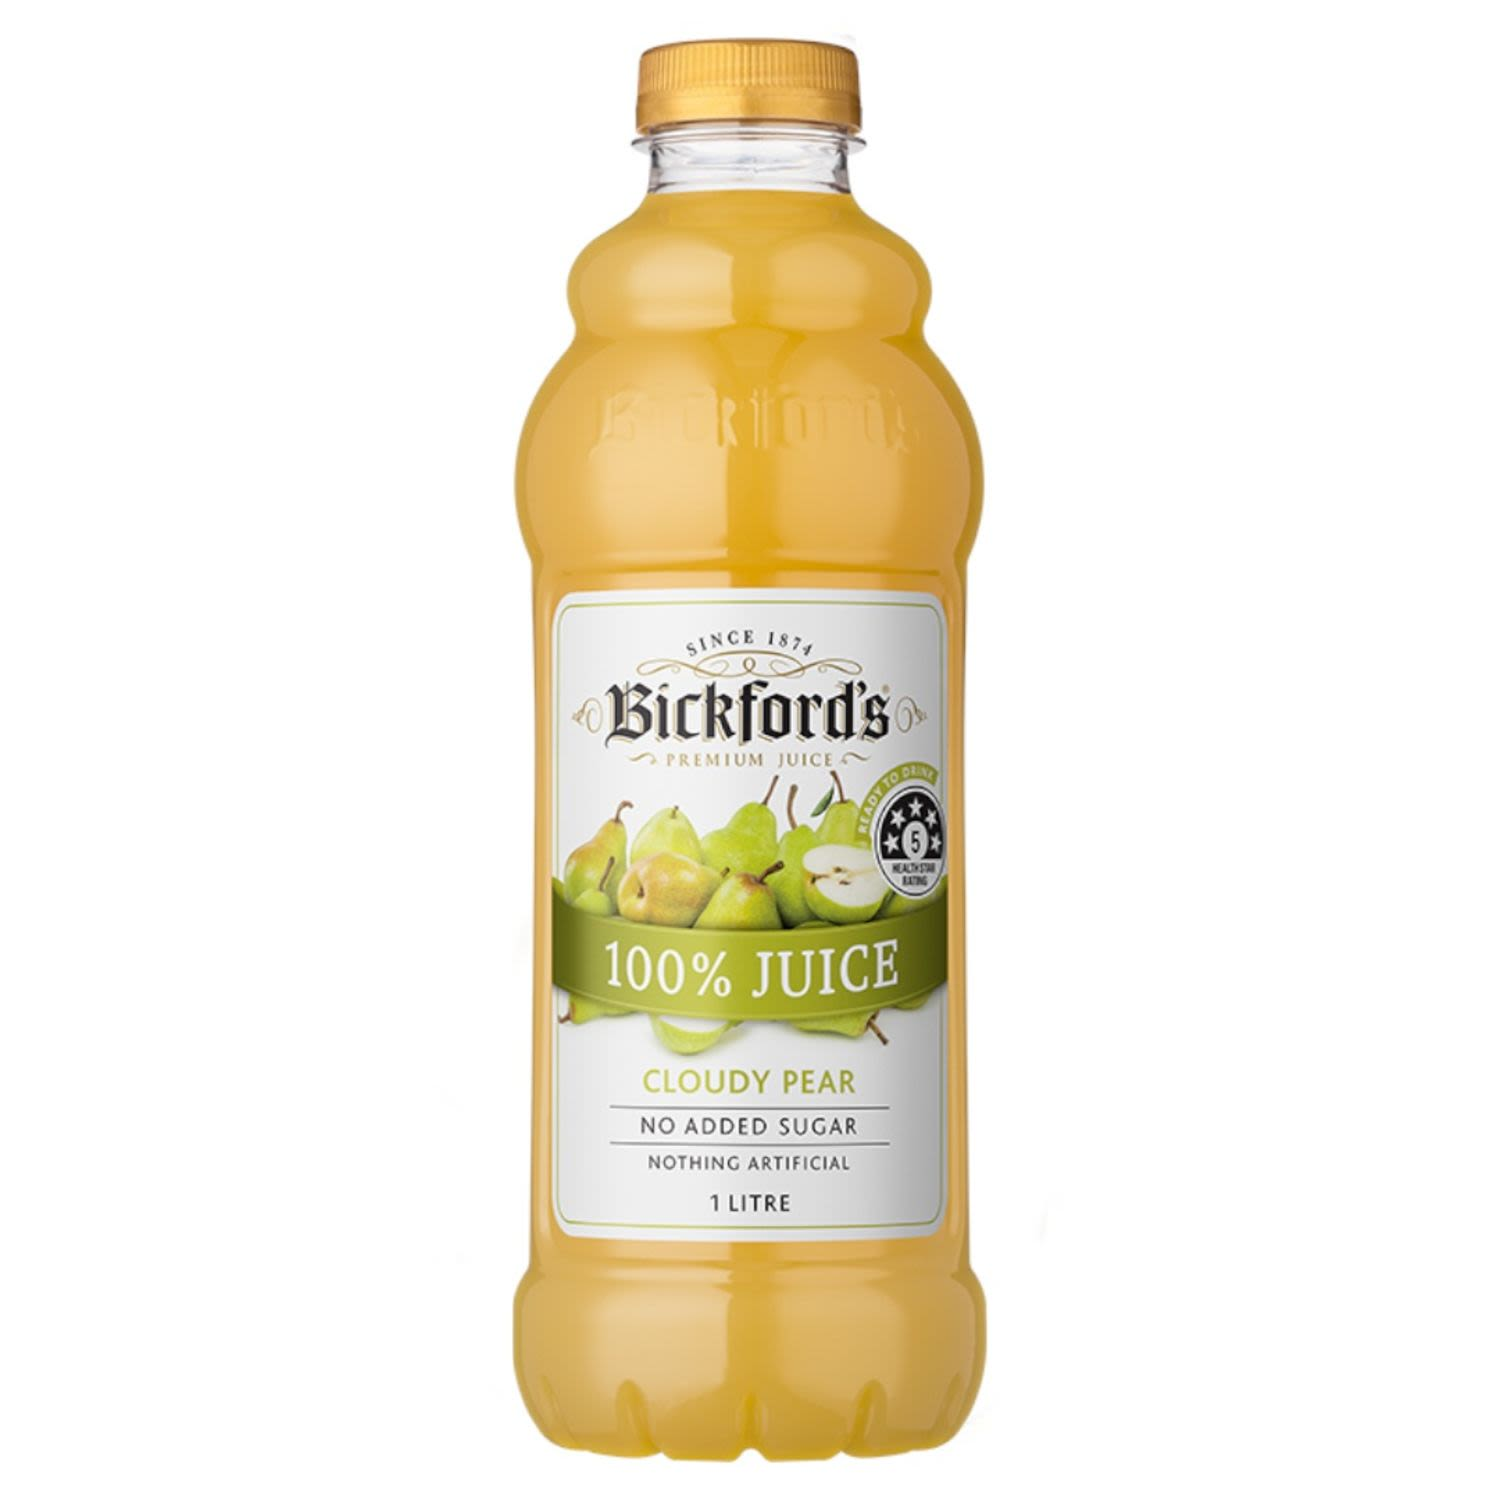 Bickford's Cord Cloudy Pear, 1 Litre